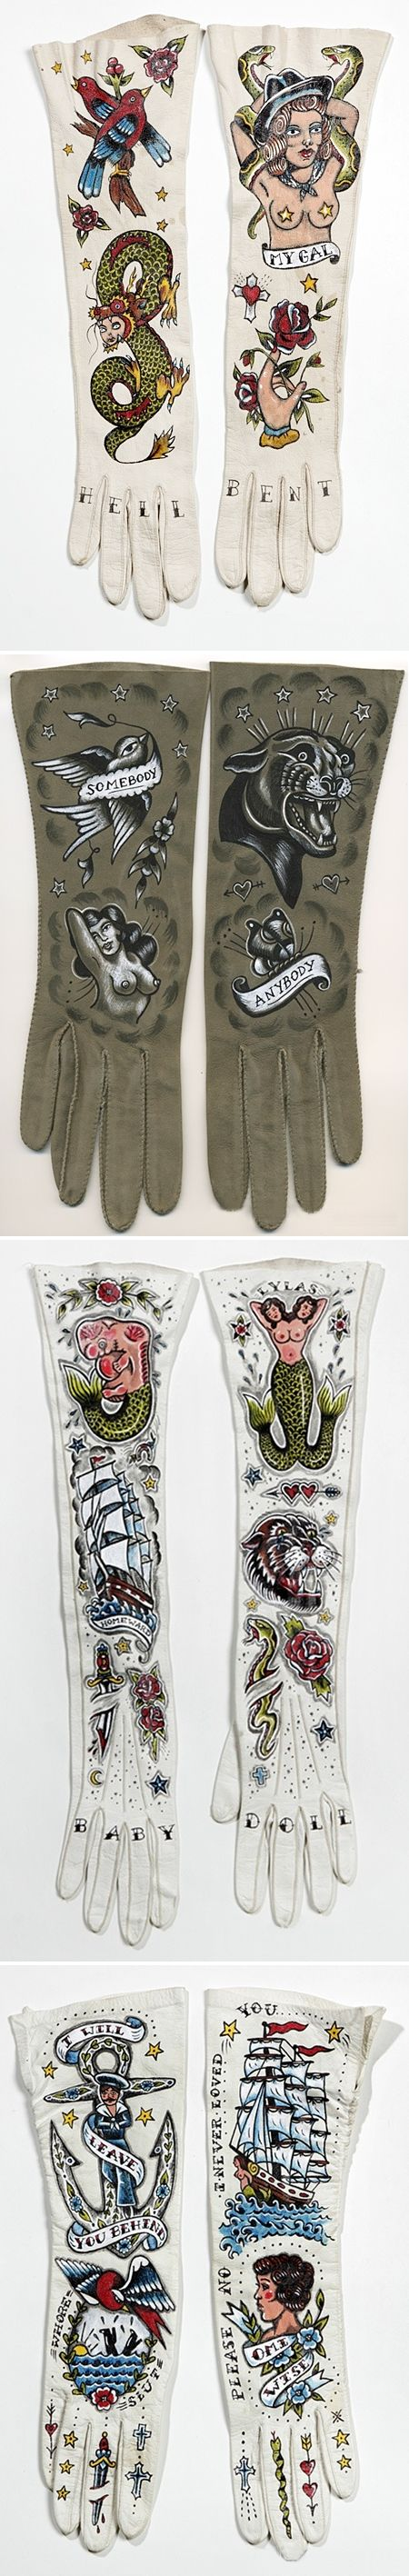 "gloves series - ellen greene ['… traditional american tattoo is a symbol of masculine adventure, rebellion and sexual exploits. at the same time gloves were a staple of ""good"" american women, tattoos were only for sailors bikers and criminals. no proper woman also had tattoos – especially not on her hands'"